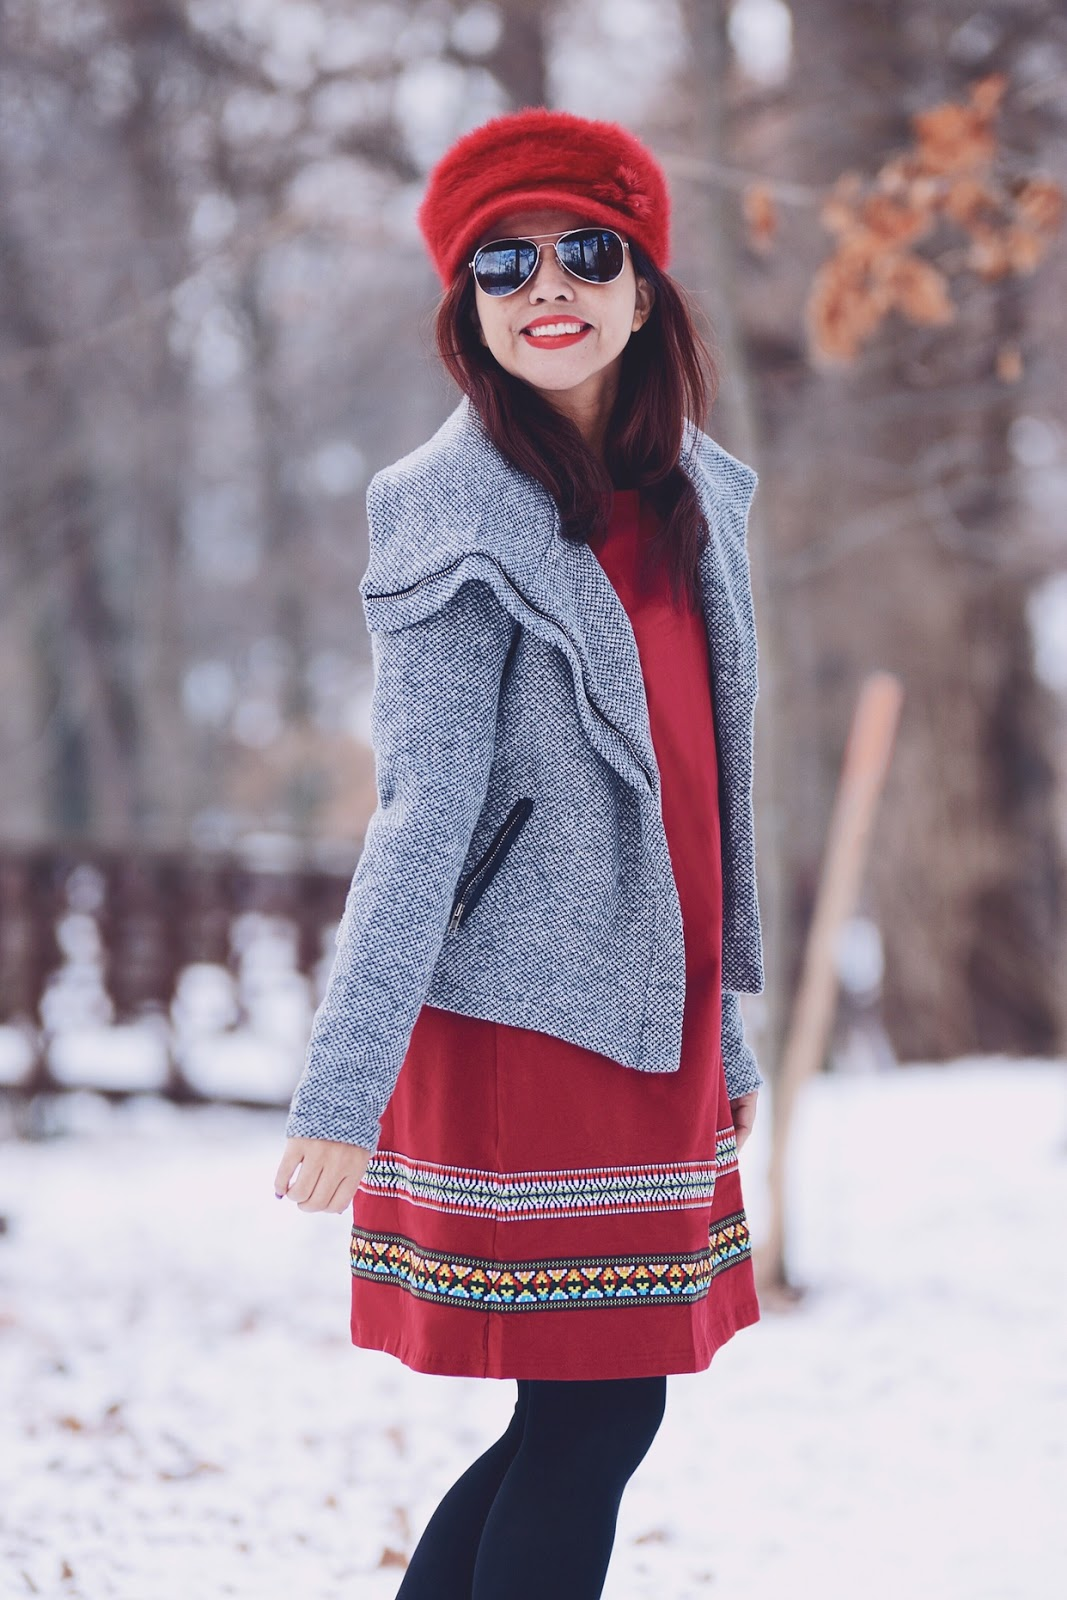 Red & Gray by Mari Estilo Wearing: Coat: Gamiss  Dress: Romwe Hat: TwinkleDeals